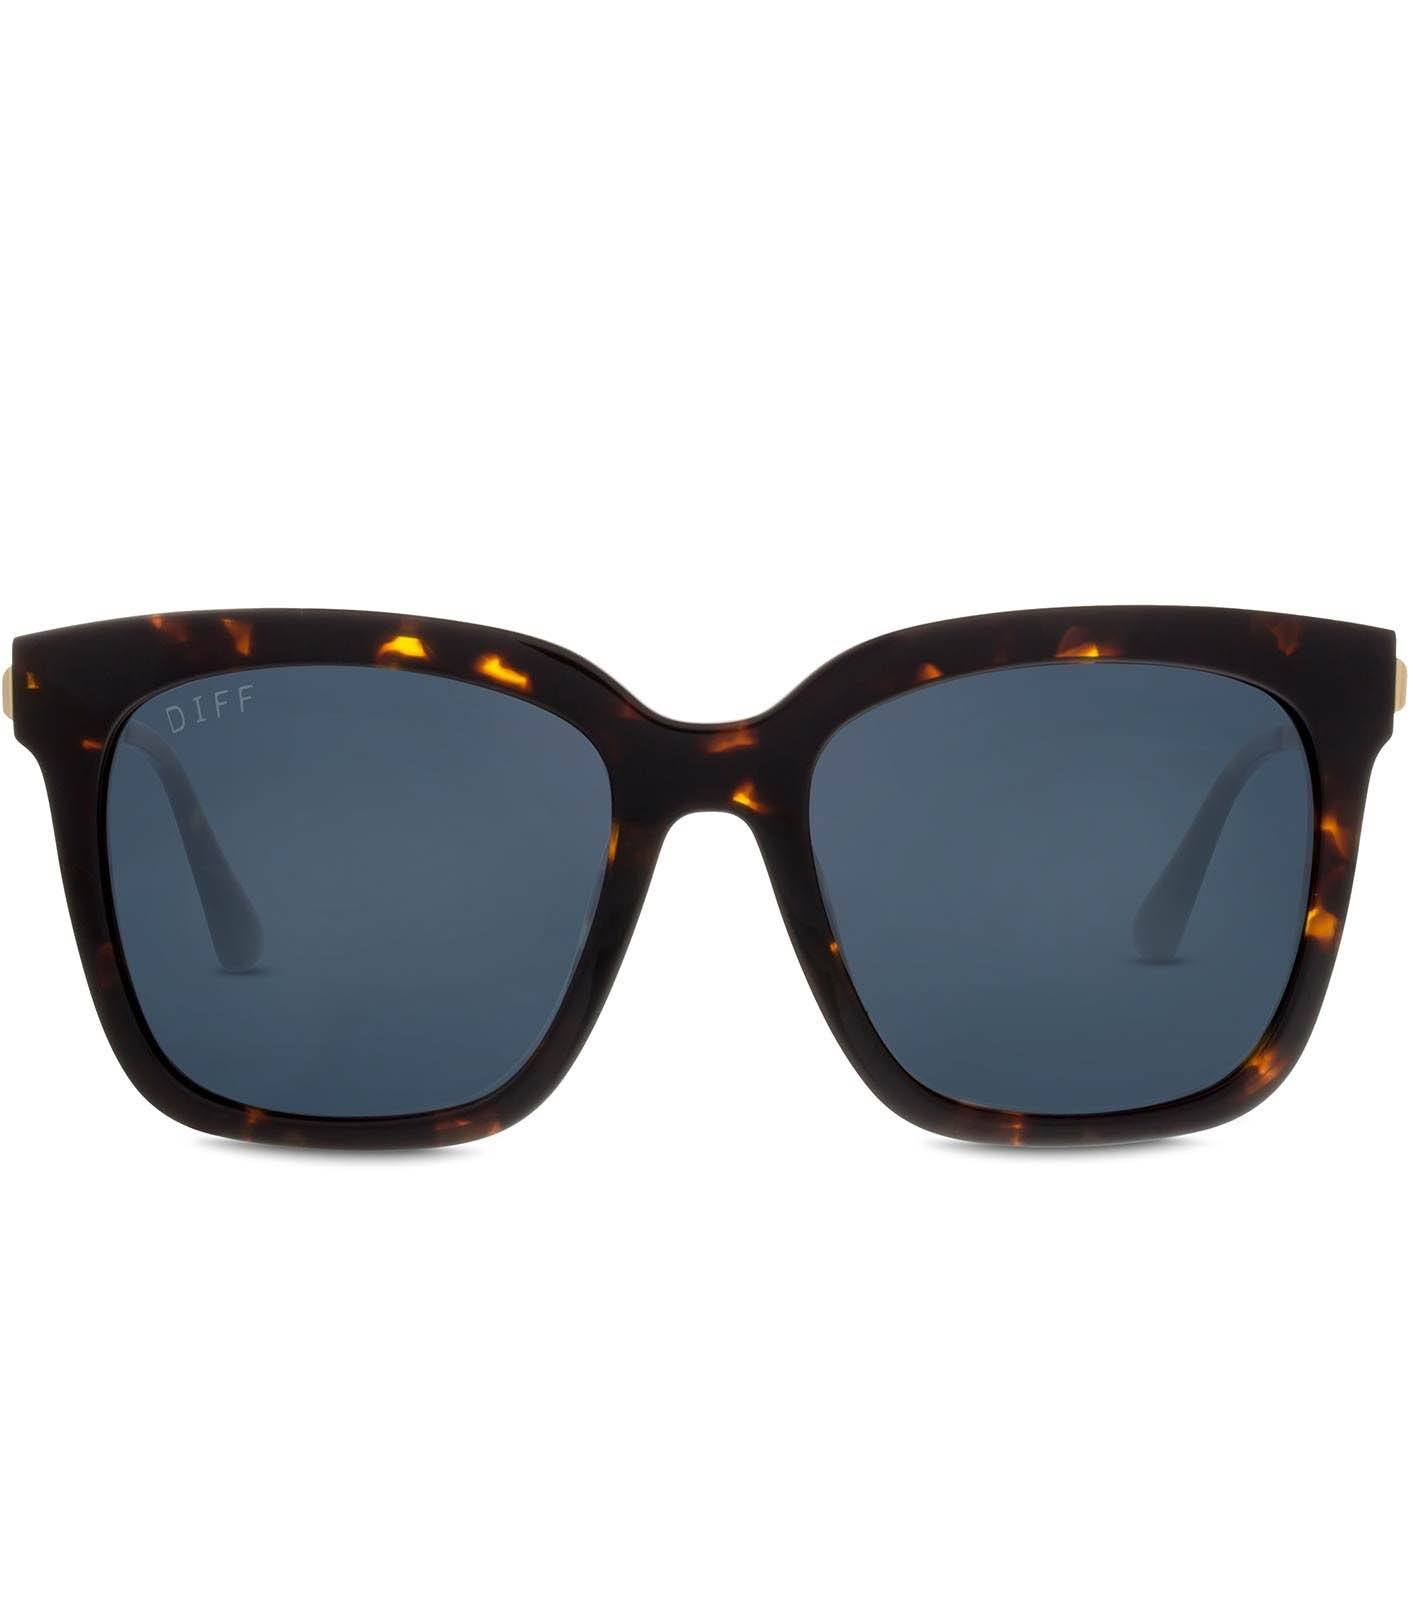 DIFF Eyewear - Bella - Tortoise (Polarized) Accessories DIFF Eyewear